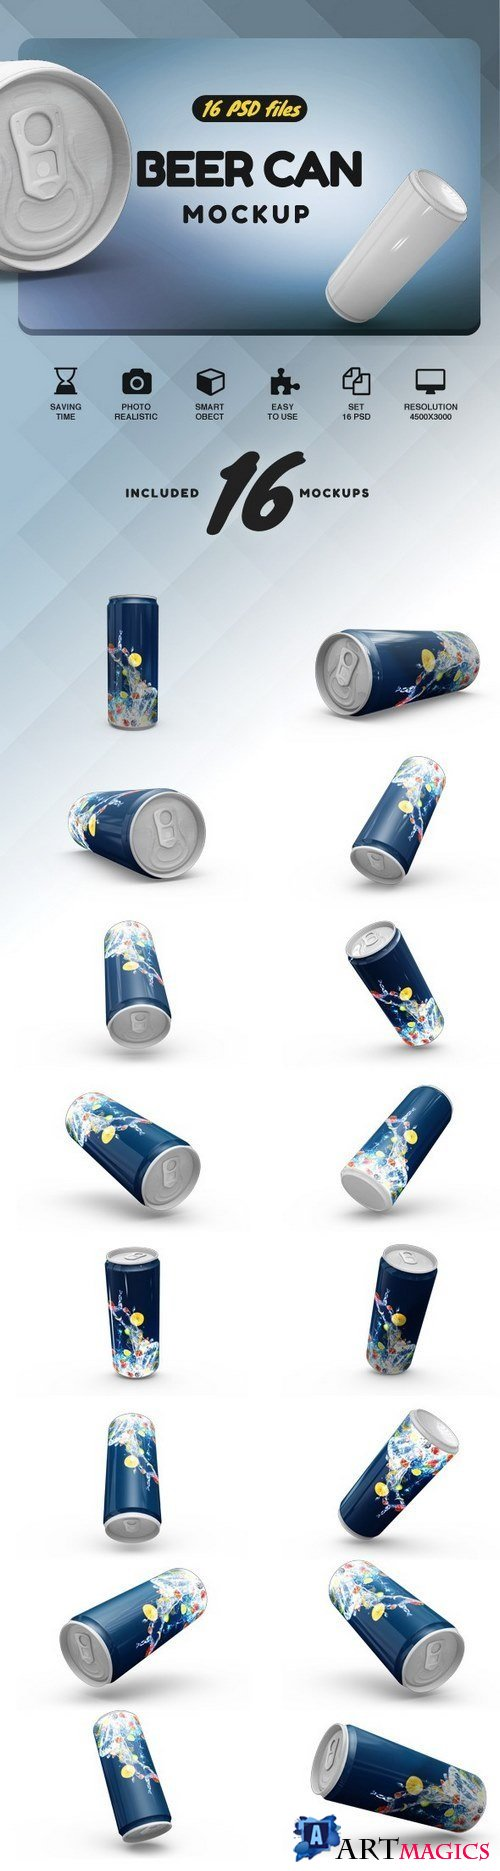 Beer Can Mock-up - 2085774